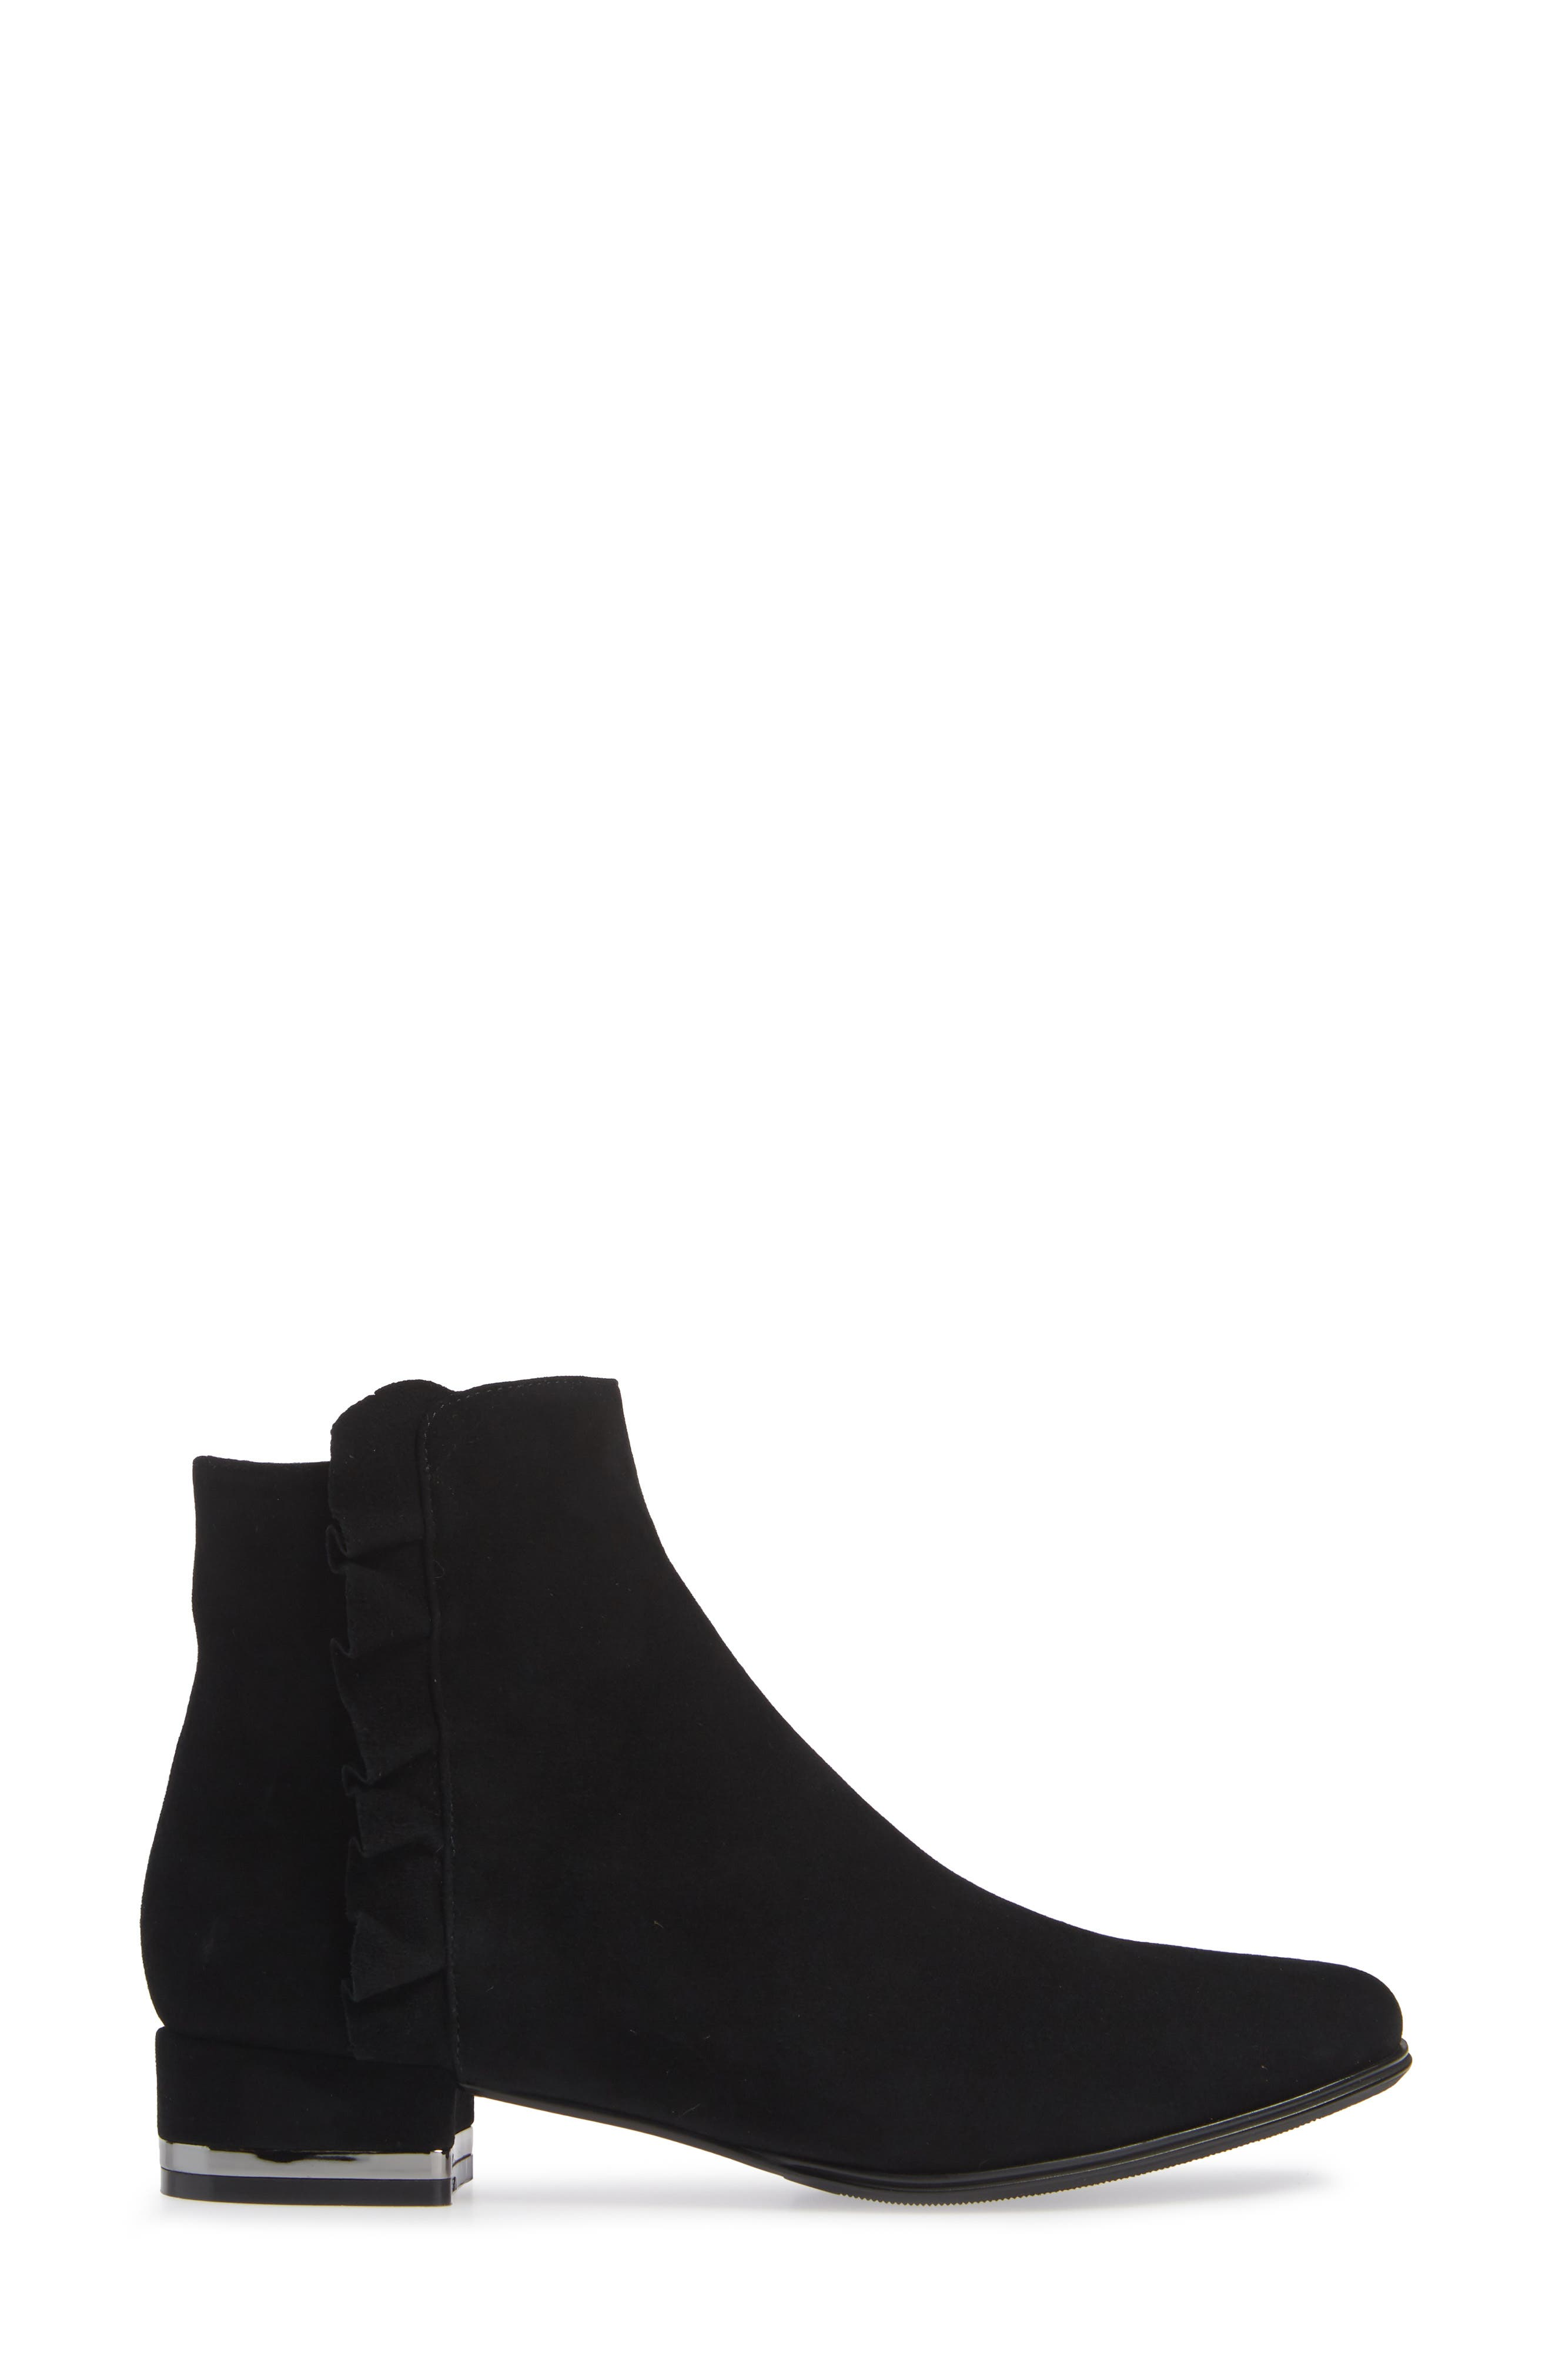 Amoke Bootie,                             Alternate thumbnail 3, color,                             BLACK SUEDE